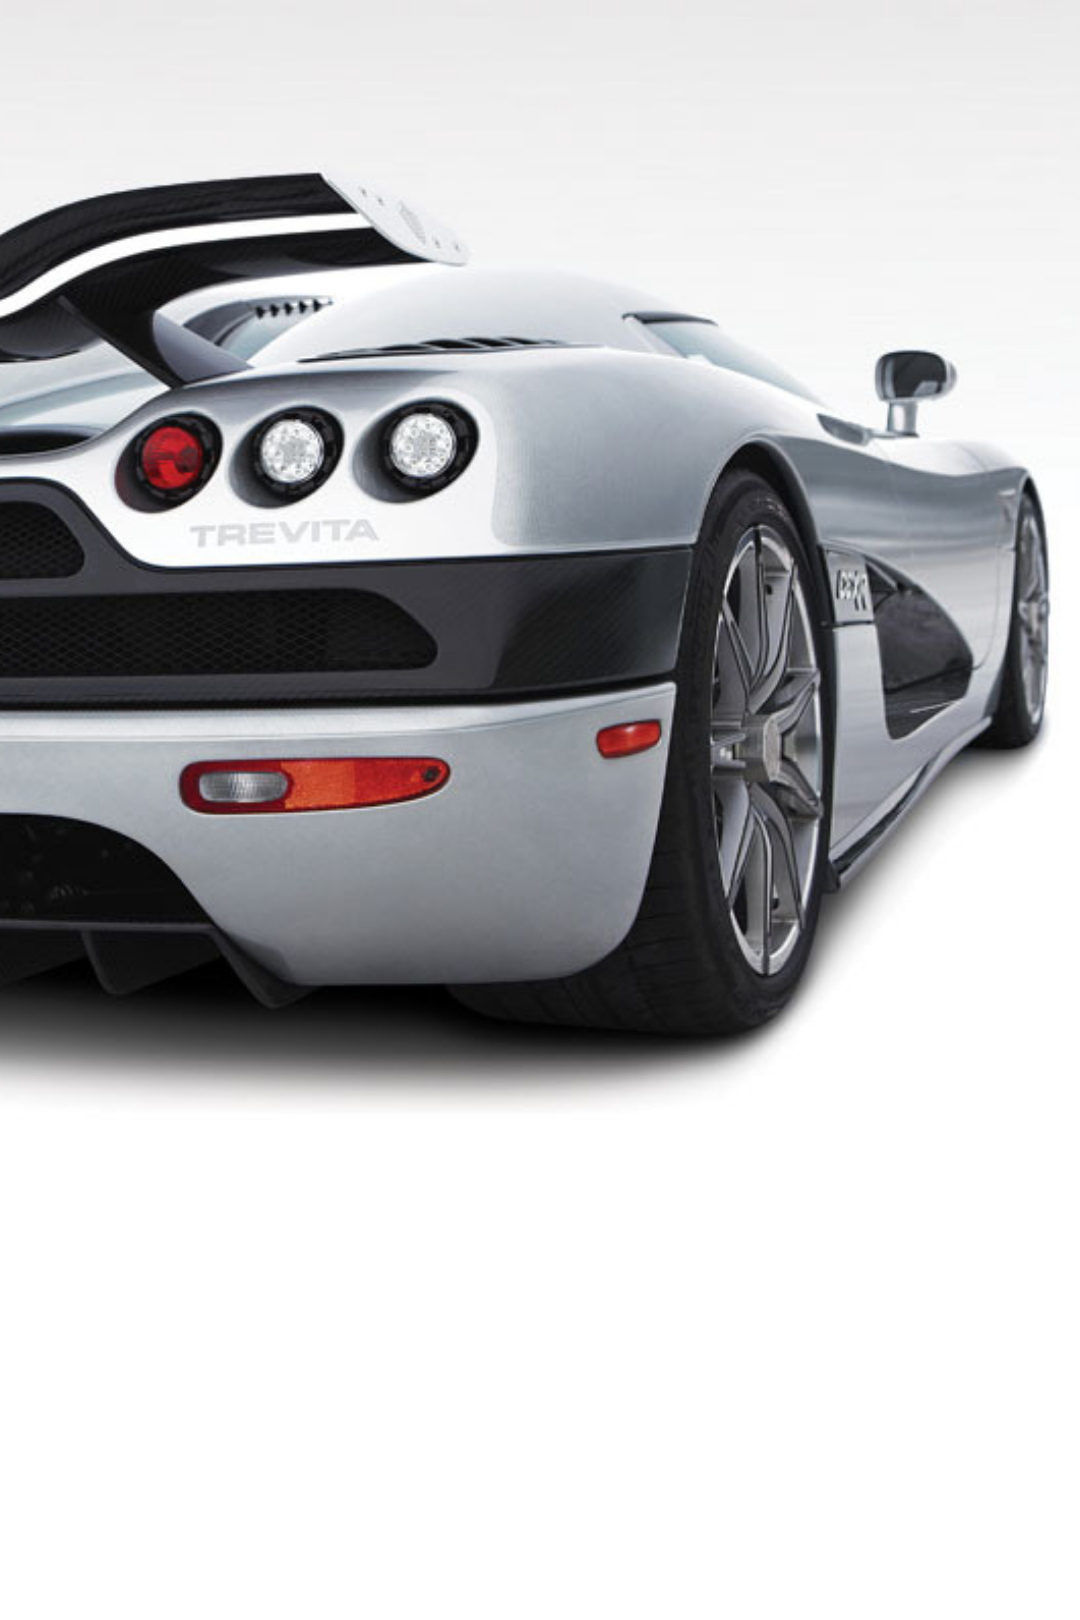 Top 10 Most Expensive Cars In The World 2020 In 2020 Most Expensive Car Car In The World Expensive Cars